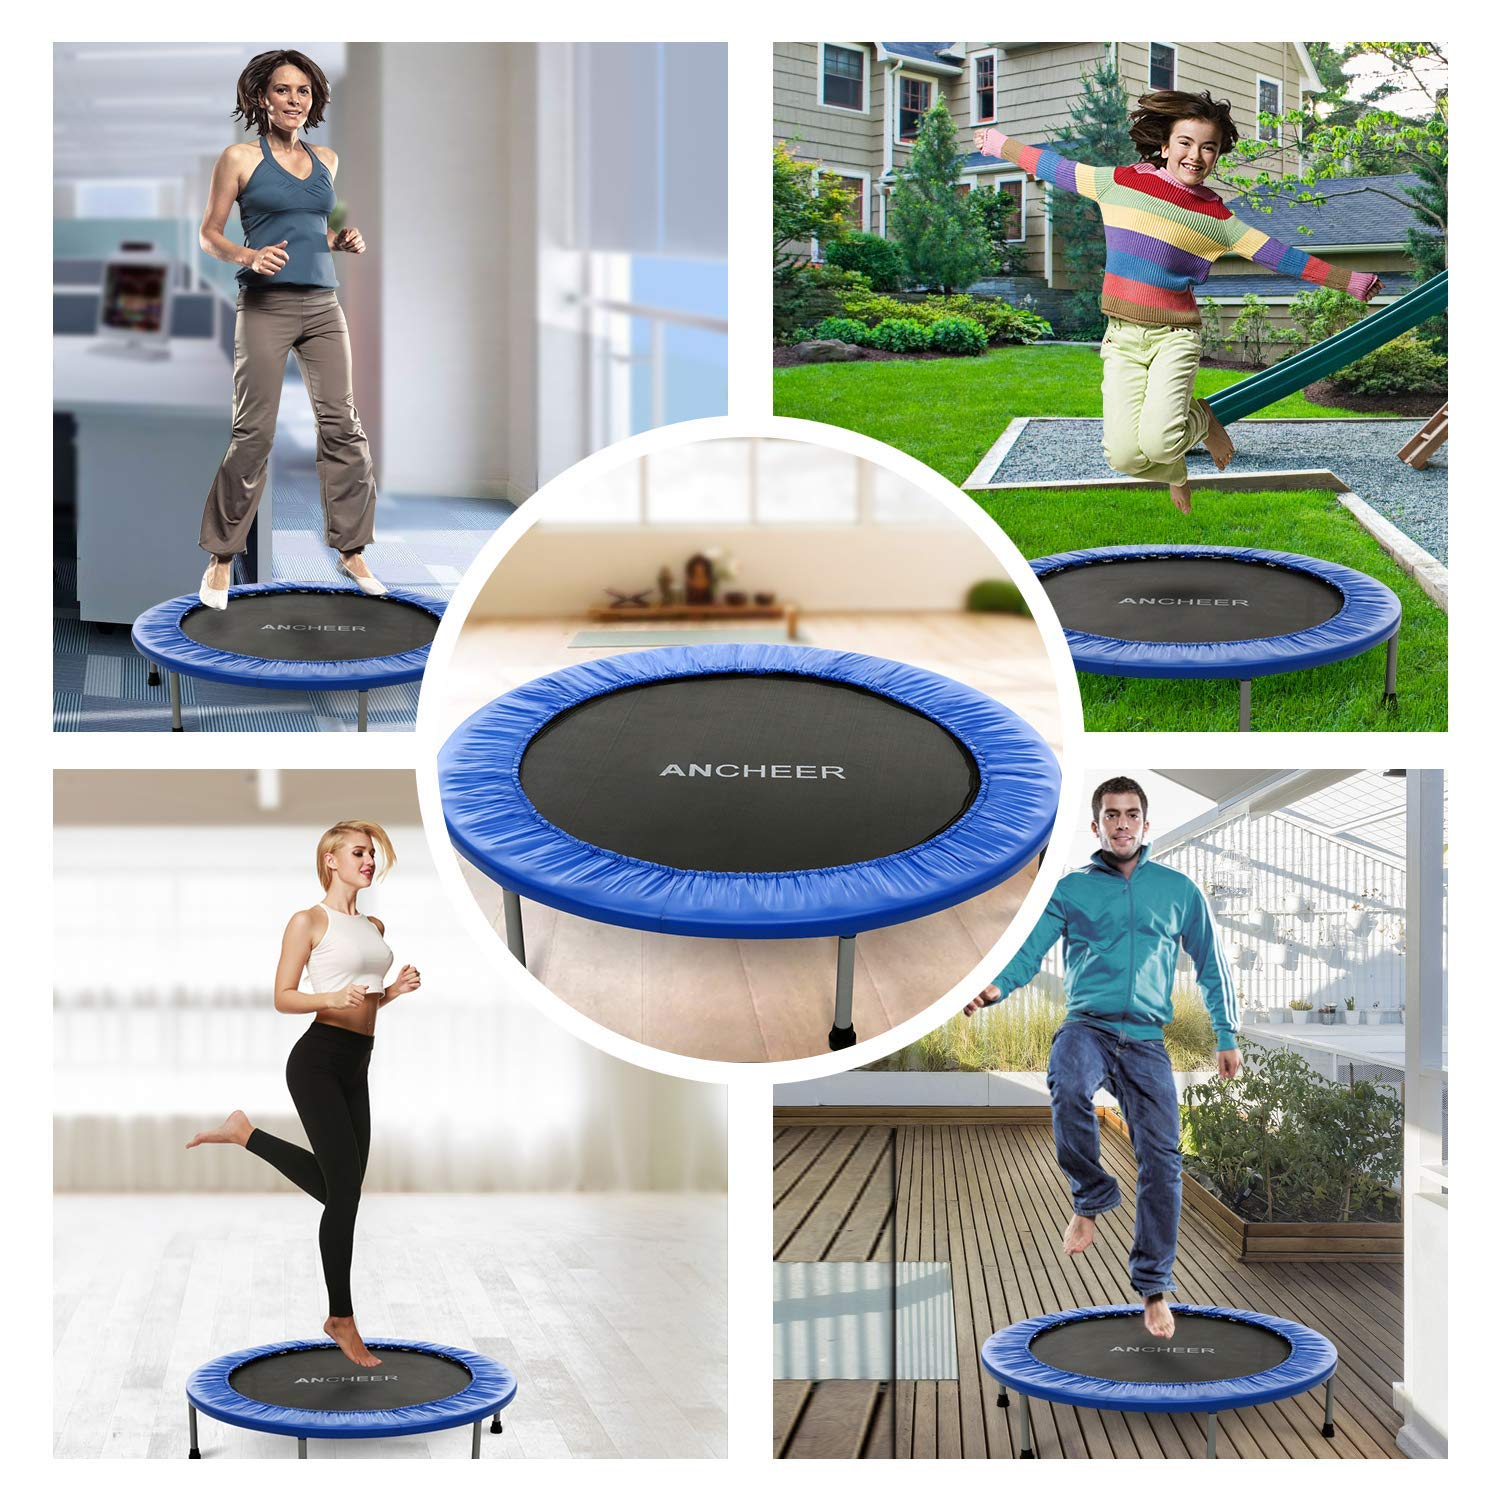 ANCHEER Max Load 220lbs Rebounder Trampoline with Safety Pad for Indoor Garden Workout Cardio Training (2 Sizes: 38 inch/40 inch, Two Modes: Folding/Not Folding) (Renewed) by ANCHEER (Image #7)